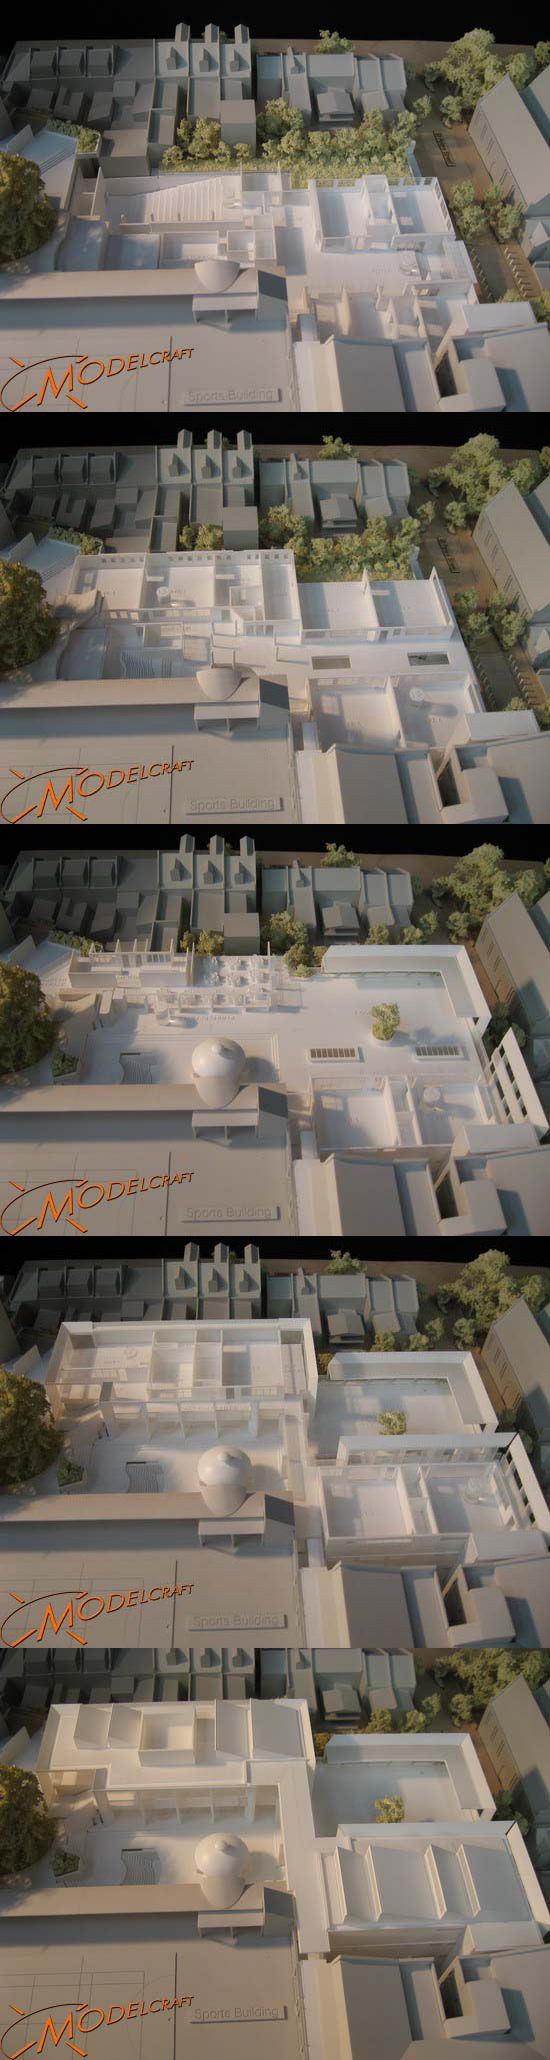 1:200 SCEGGS. Architectural Model by Modelcraft (NSW) Pty Ltd